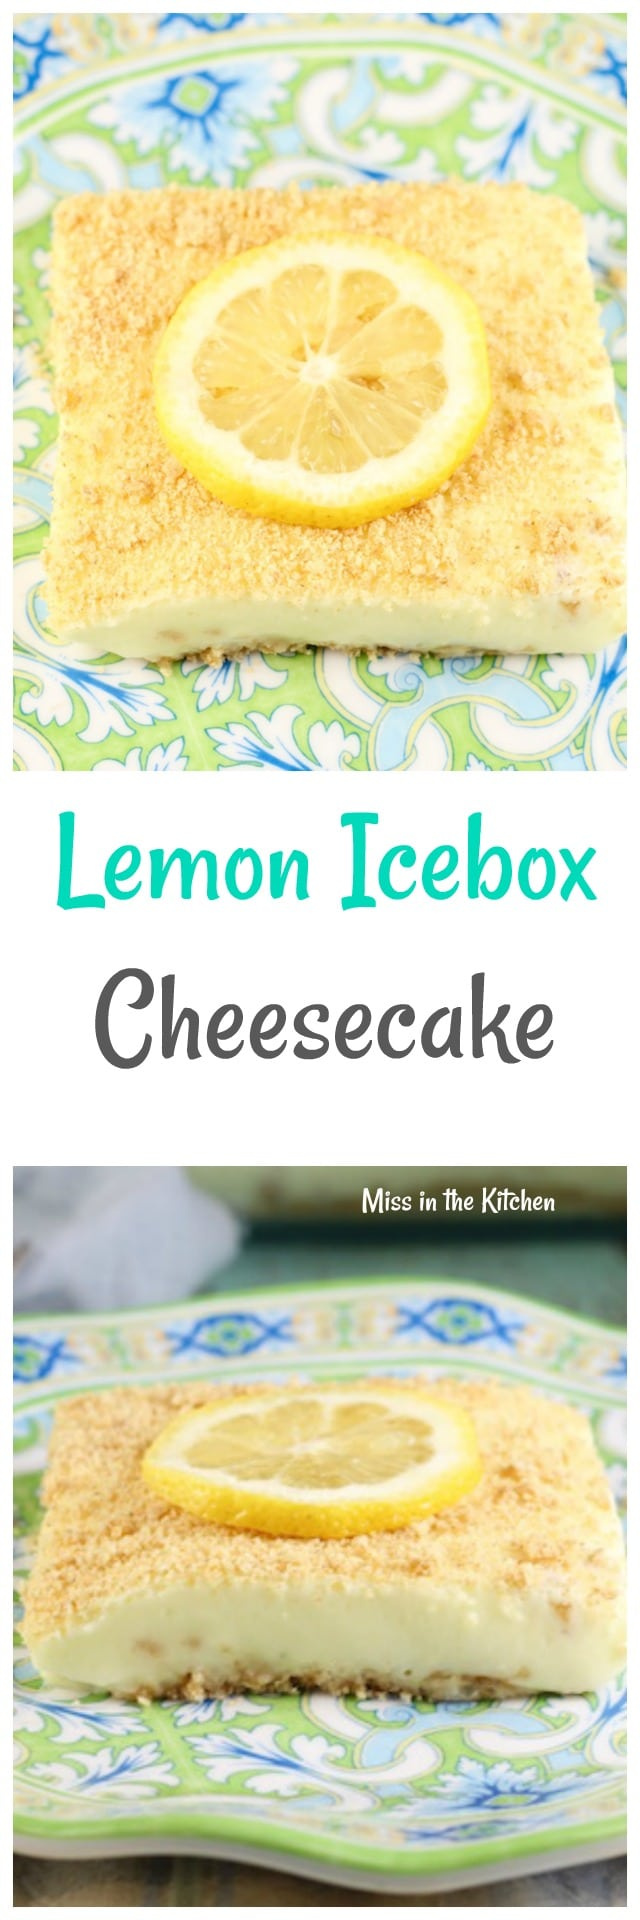 Lemon Icebox Cheesecake Recipe ~ Easy No Bake Dessert ~ MissintheKitchen.com